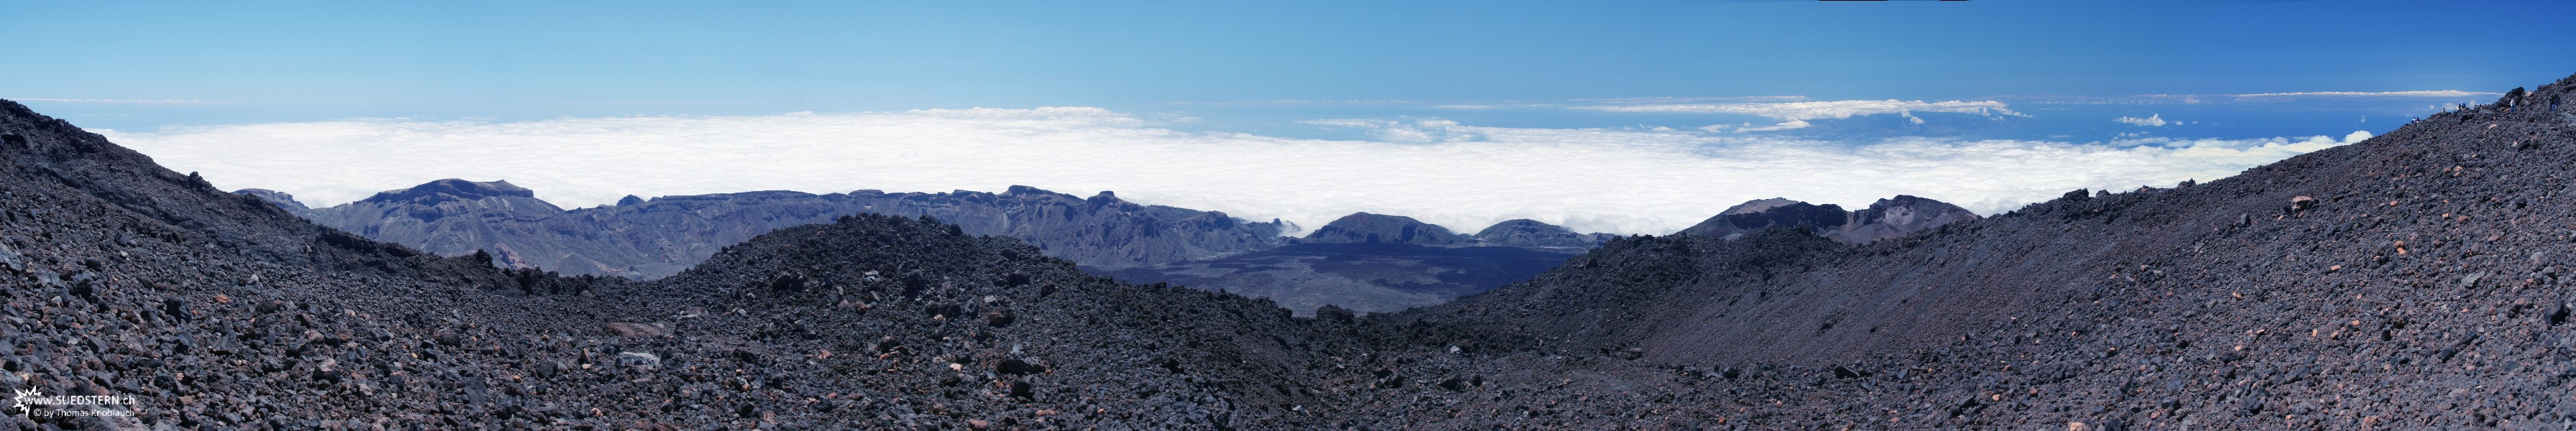 2007-09-06 - 14 - Teneriffa, Panorama from Teide mountain